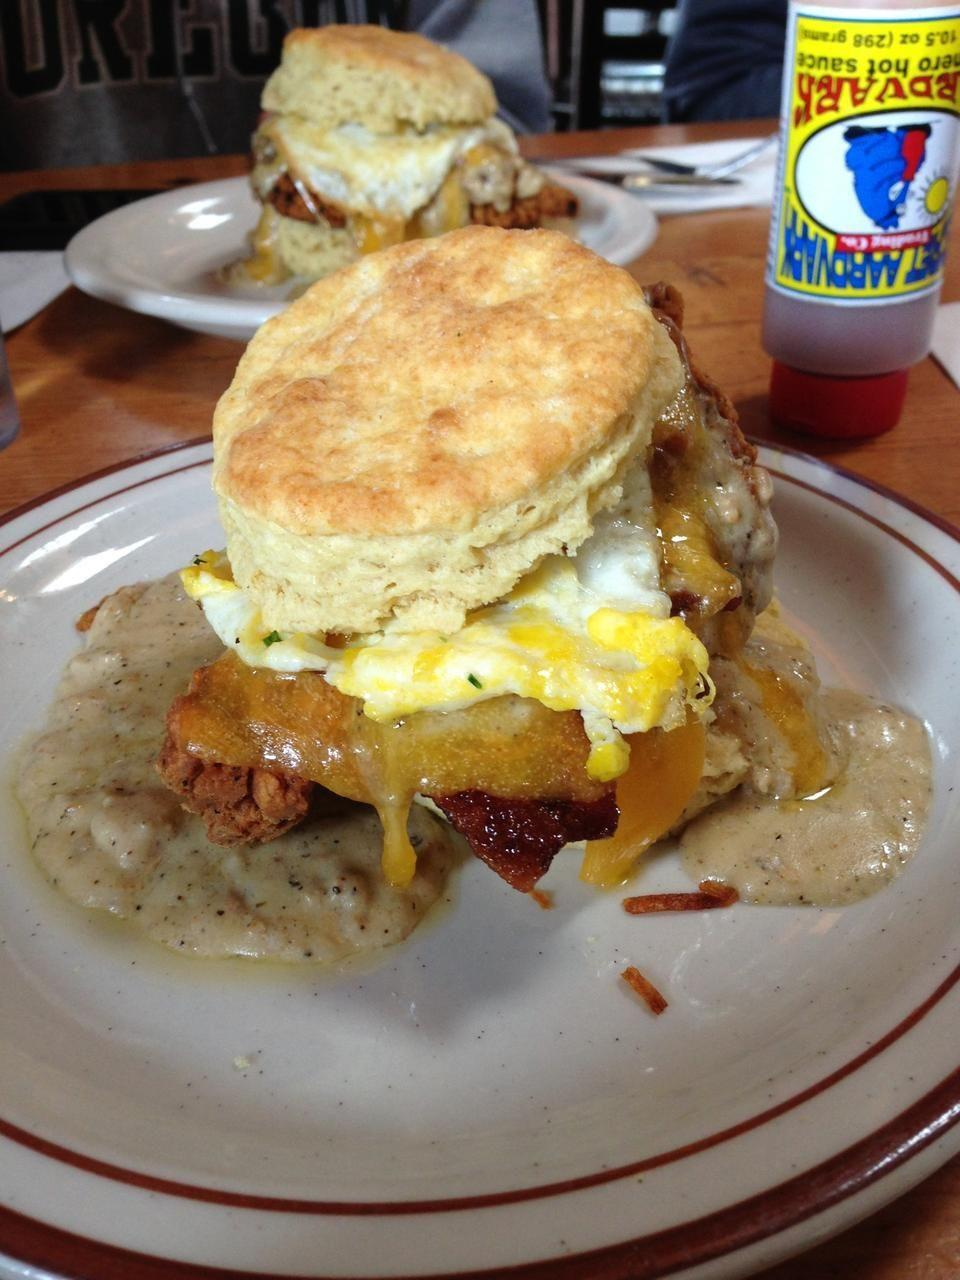 """<p><a href=""""https://www.tripadvisor.com/Restaurant_Review-g52024-d1017614-Reviews-Pine_State_Biscuits-Portland_Oregon.html"""" rel=""""nofollow noopener"""" target=""""_blank"""" data-ylk=""""slk:Pine State Biscuits"""" class=""""link rapid-noclick-resp"""">Pine State Biscuits</a>, Portland</p><p>The <span class=""""entity tip_taste_match"""">Reggie deluxe</span> was FANTASTIC. The <span class=""""entity tip_taste_match"""">chicken</span> was extremely <span class=""""entity tip_taste_match"""">crispy</span> yet moist and <span class=""""entity tip_taste_match"""">gravy</span> was so flavorful and delicious. The <span class=""""entity tip_taste_match"""">egg</span> is the much needed <span class=""""entity tip_taste_match"""">cherry</span> on top.<span class=""""redactor-invisible-space""""> - Foursquare user <a href=""""https://foursquare.com/user/22906019"""" rel=""""nofollow noopener"""" target=""""_blank"""" data-ylk=""""slk:Allison Yu"""" class=""""link rapid-noclick-resp"""">Allison Yu</a></span><br></p>"""